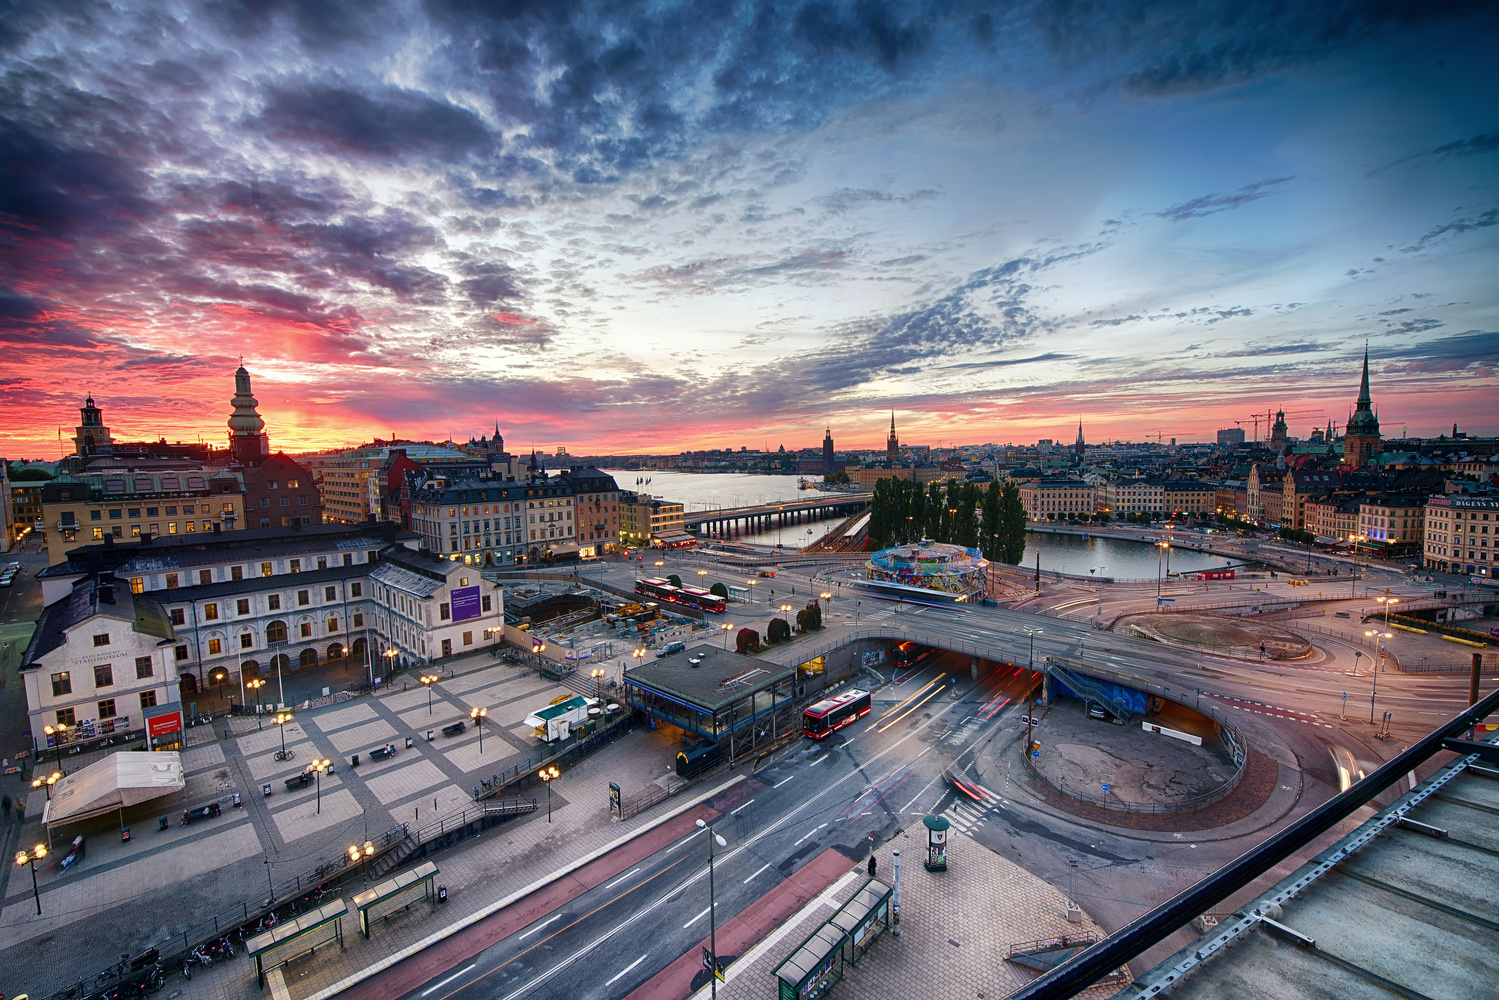 Stockholm by Boo Keong Fang